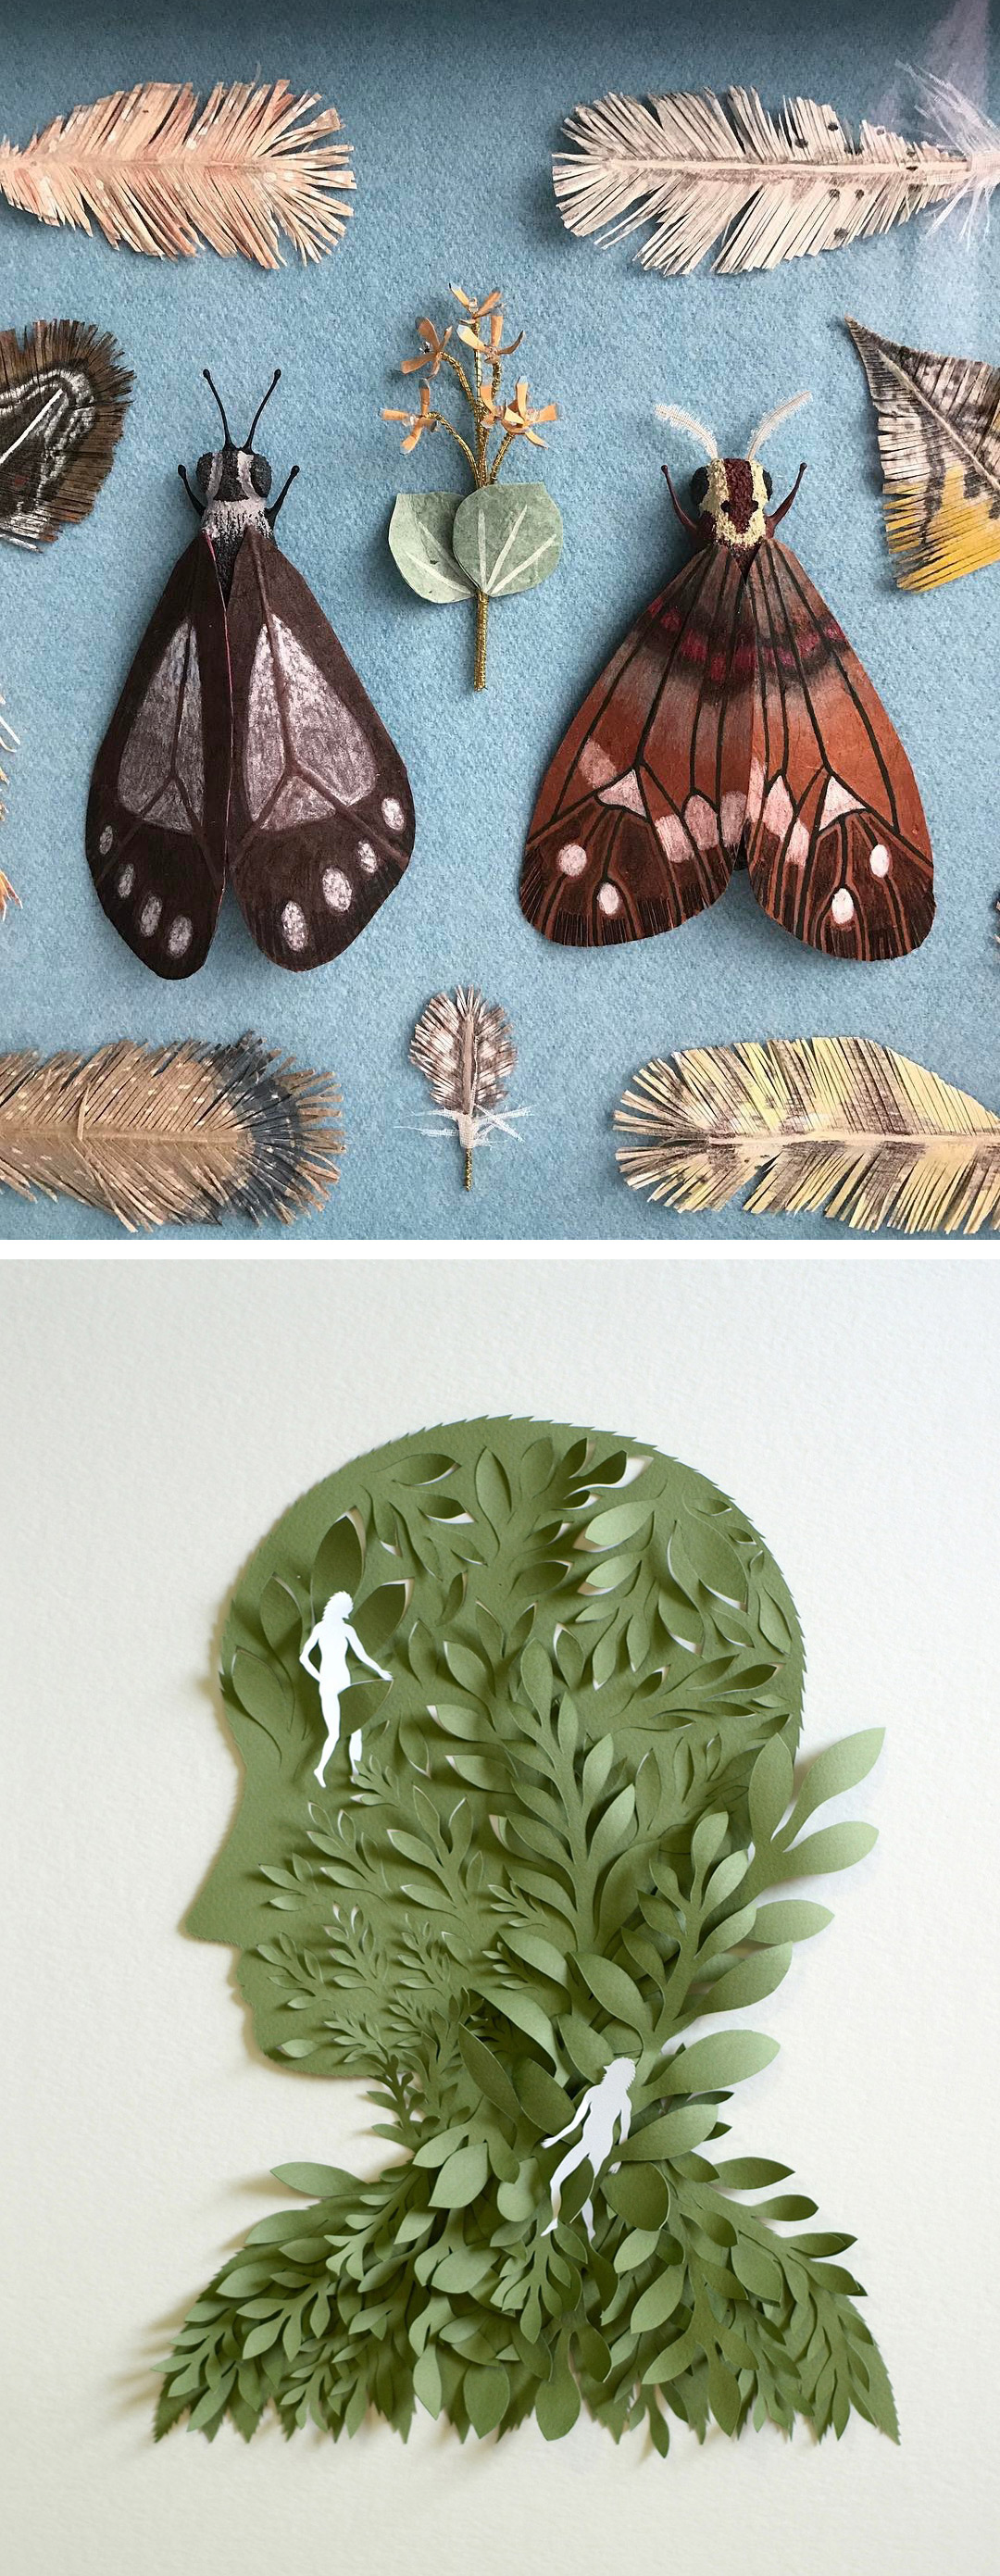 10 Examples Of Cut Paper Illustration To Put You In Tune